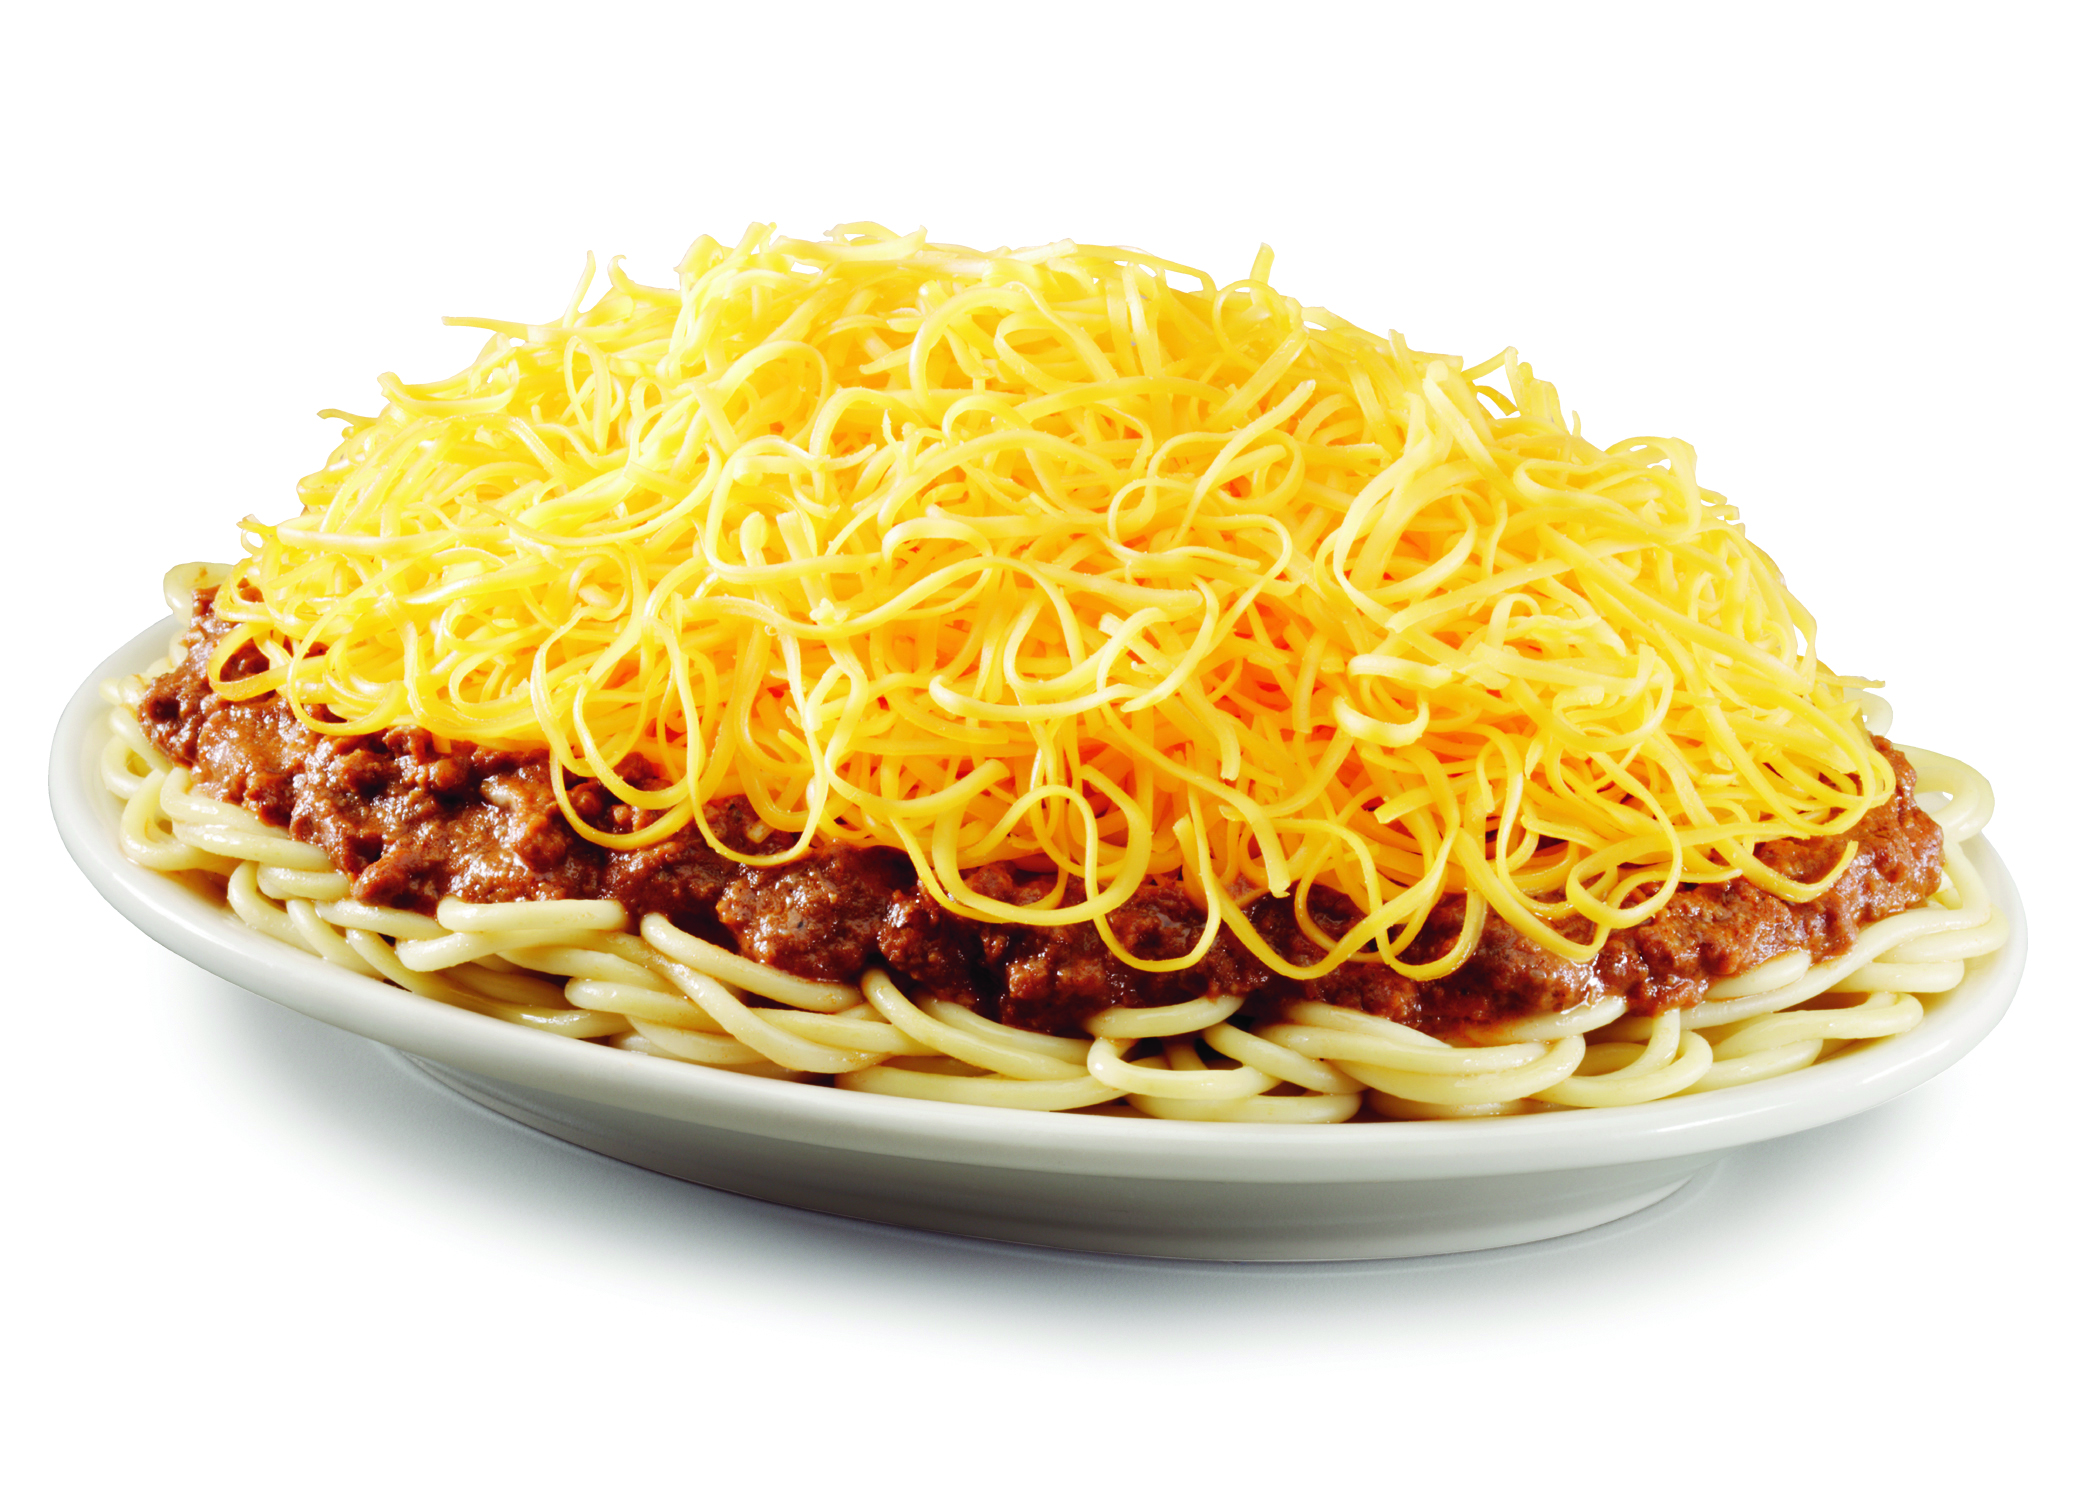 Skyline Chili 3-way - American Food Roots